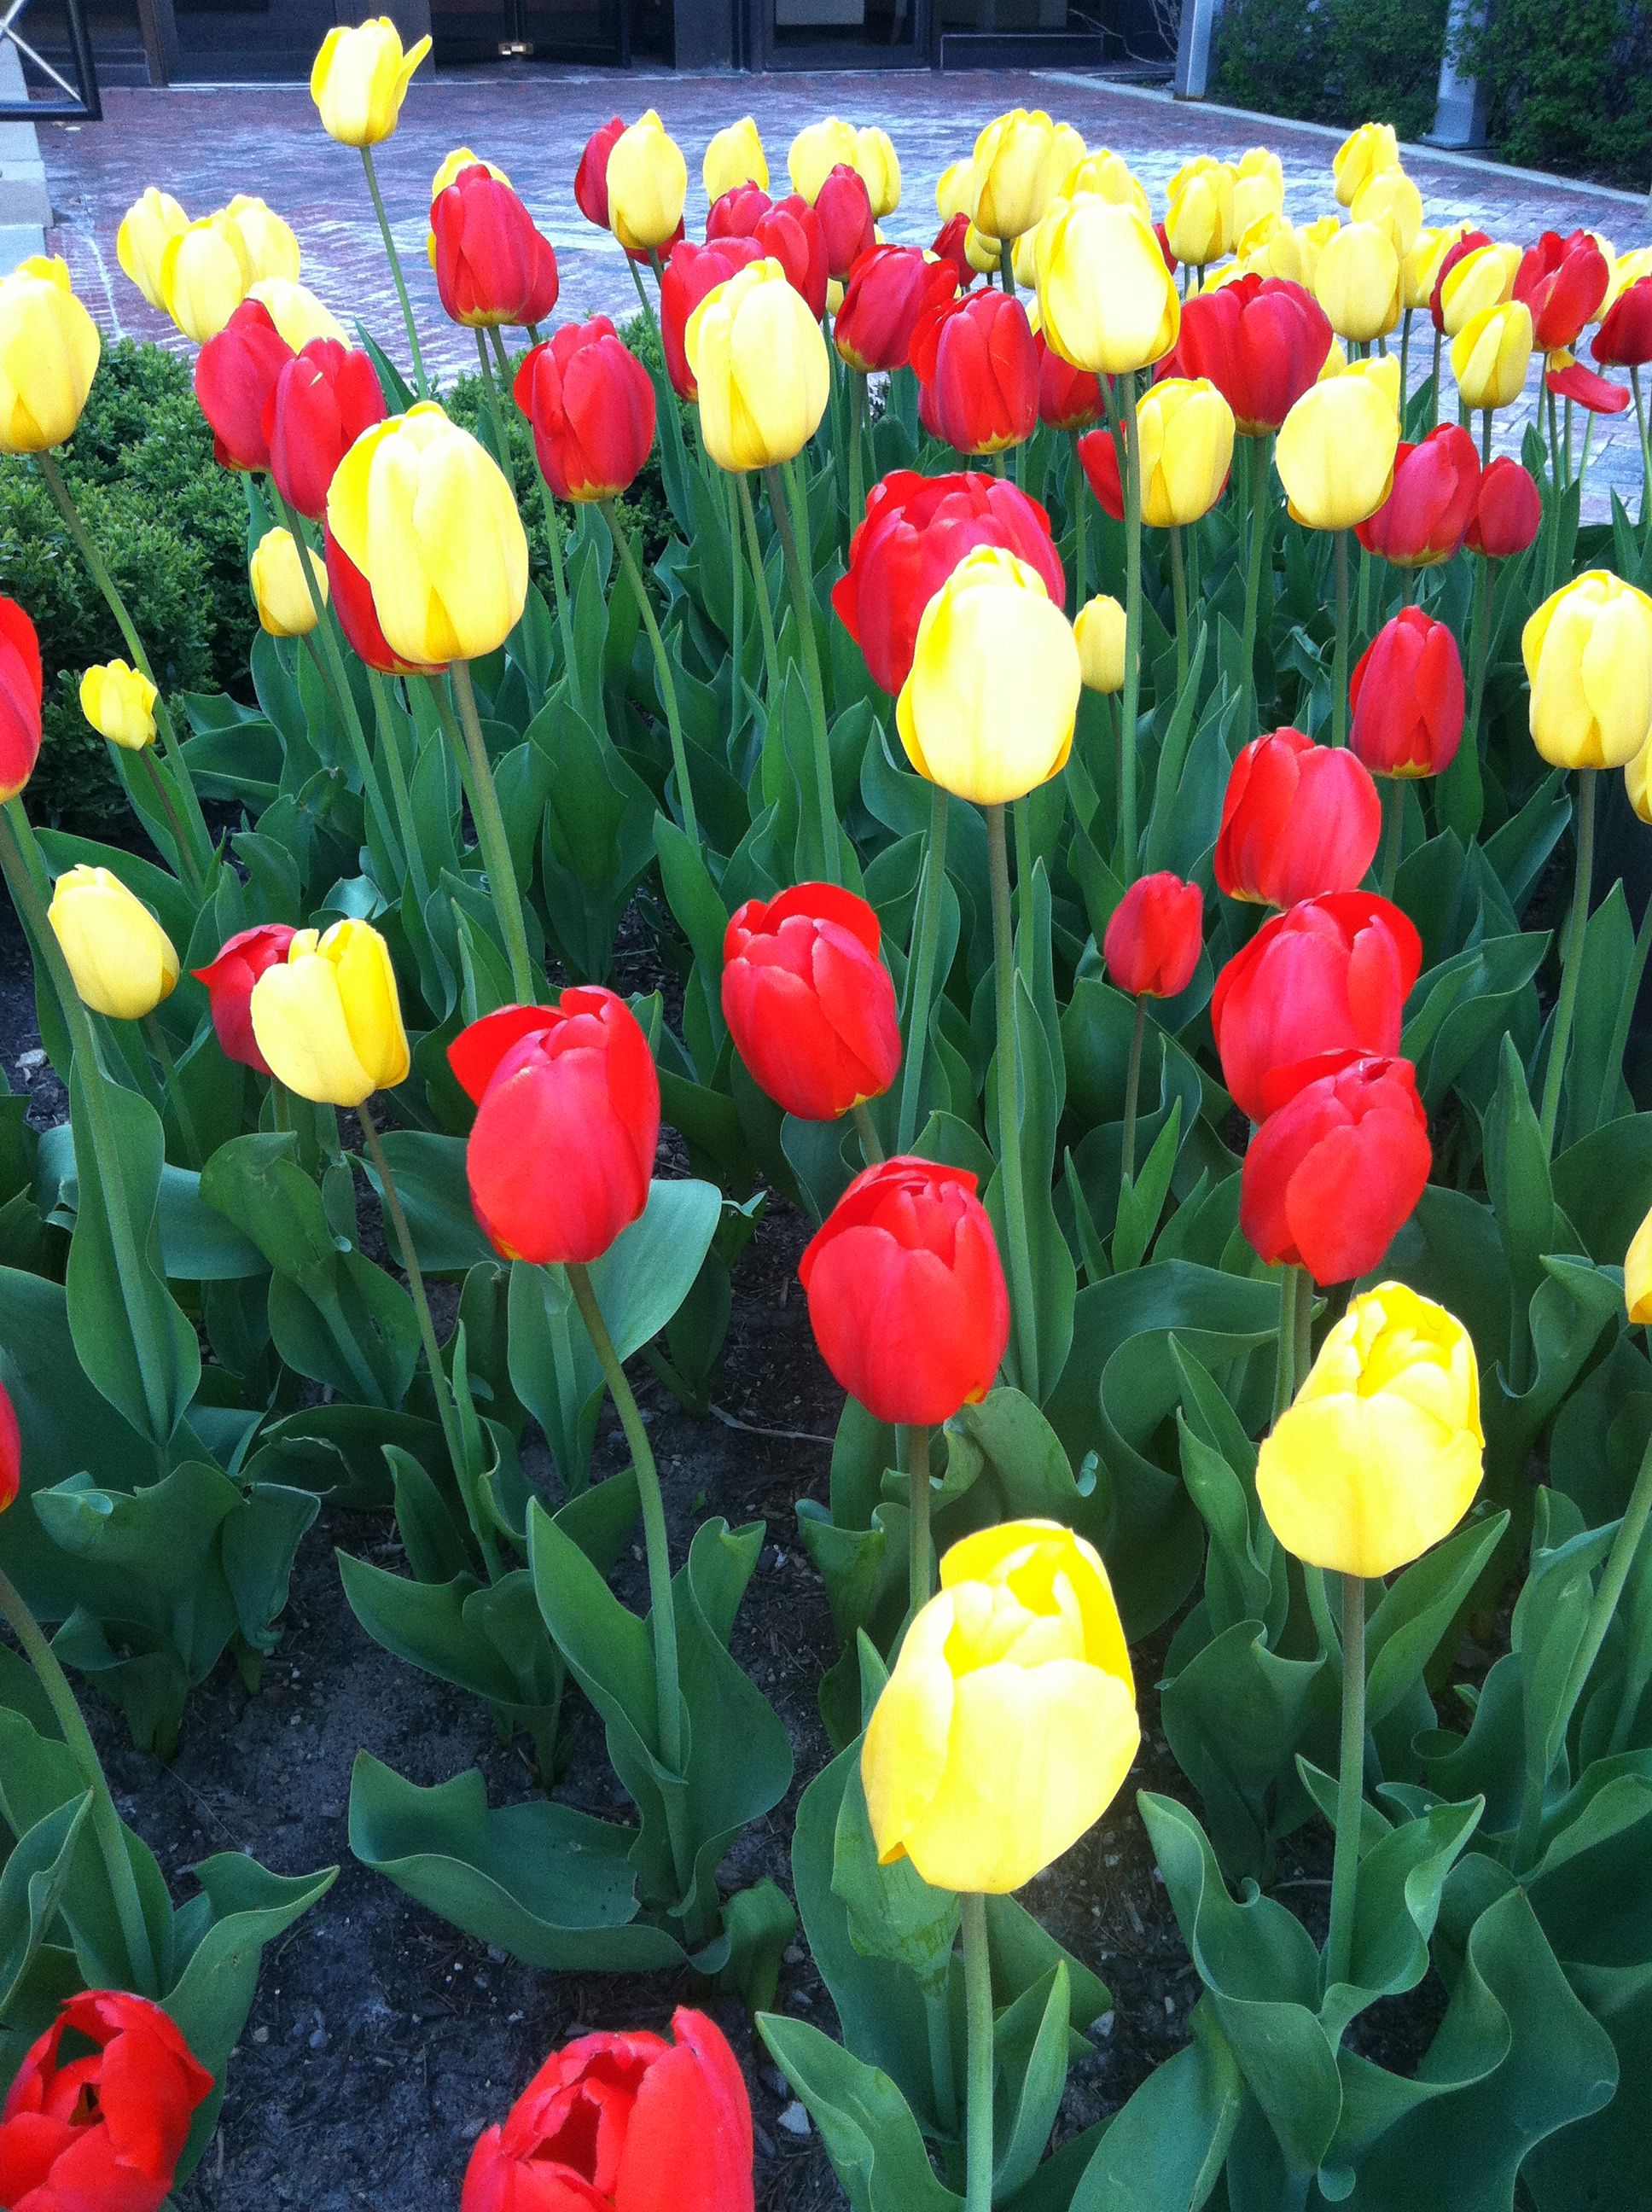 Bright Chicago tulips mean summer is near!